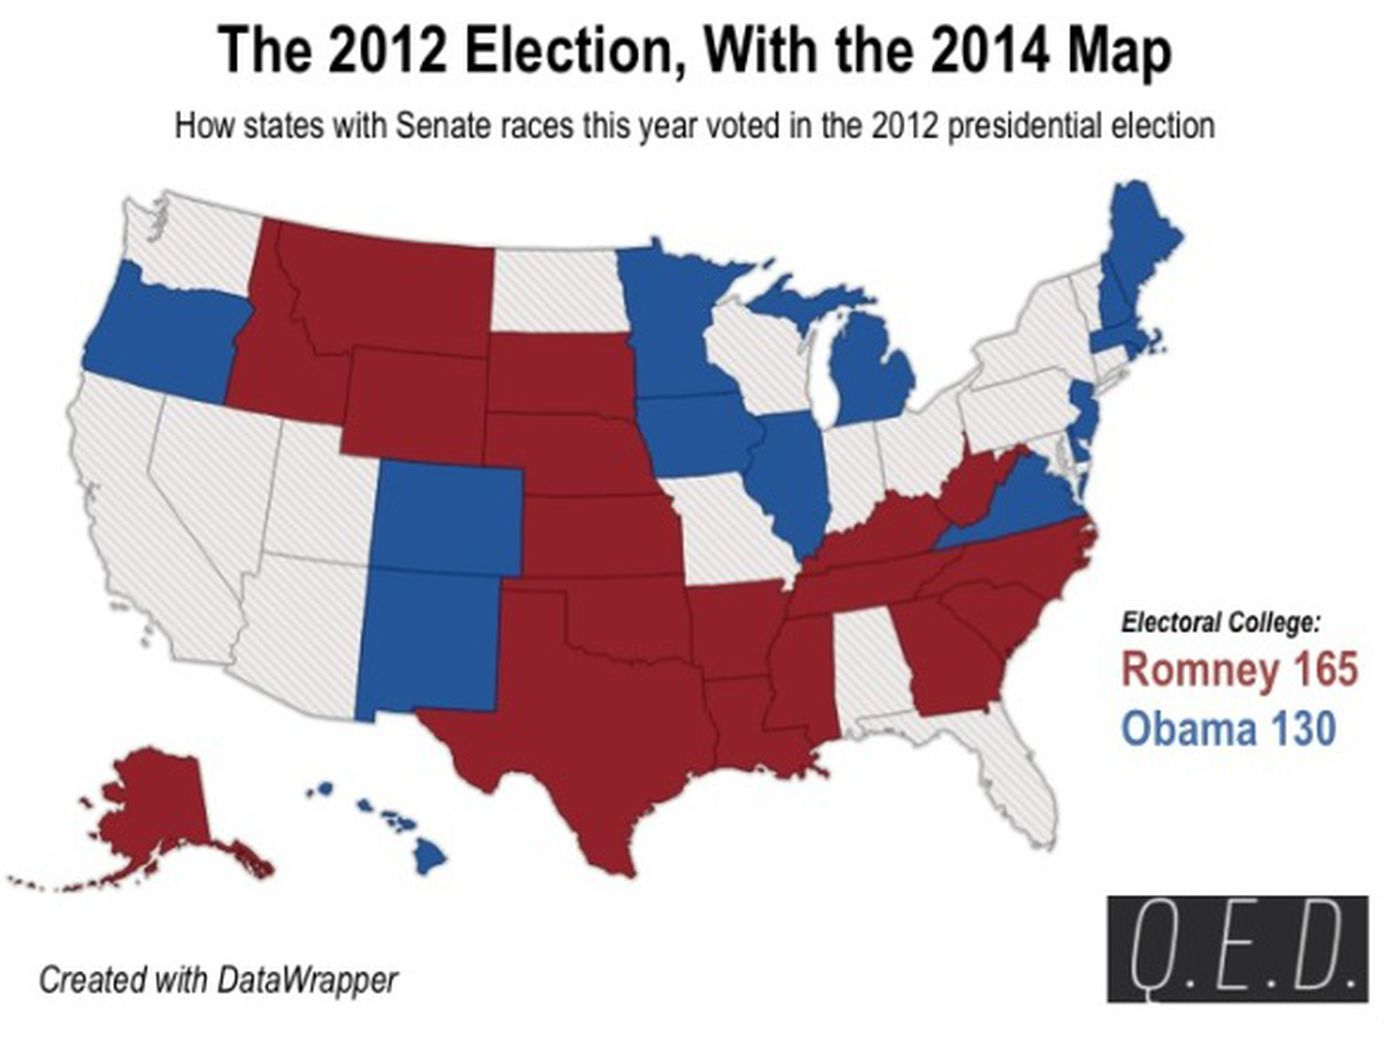 If the 2012 election was only in the states voting for ...